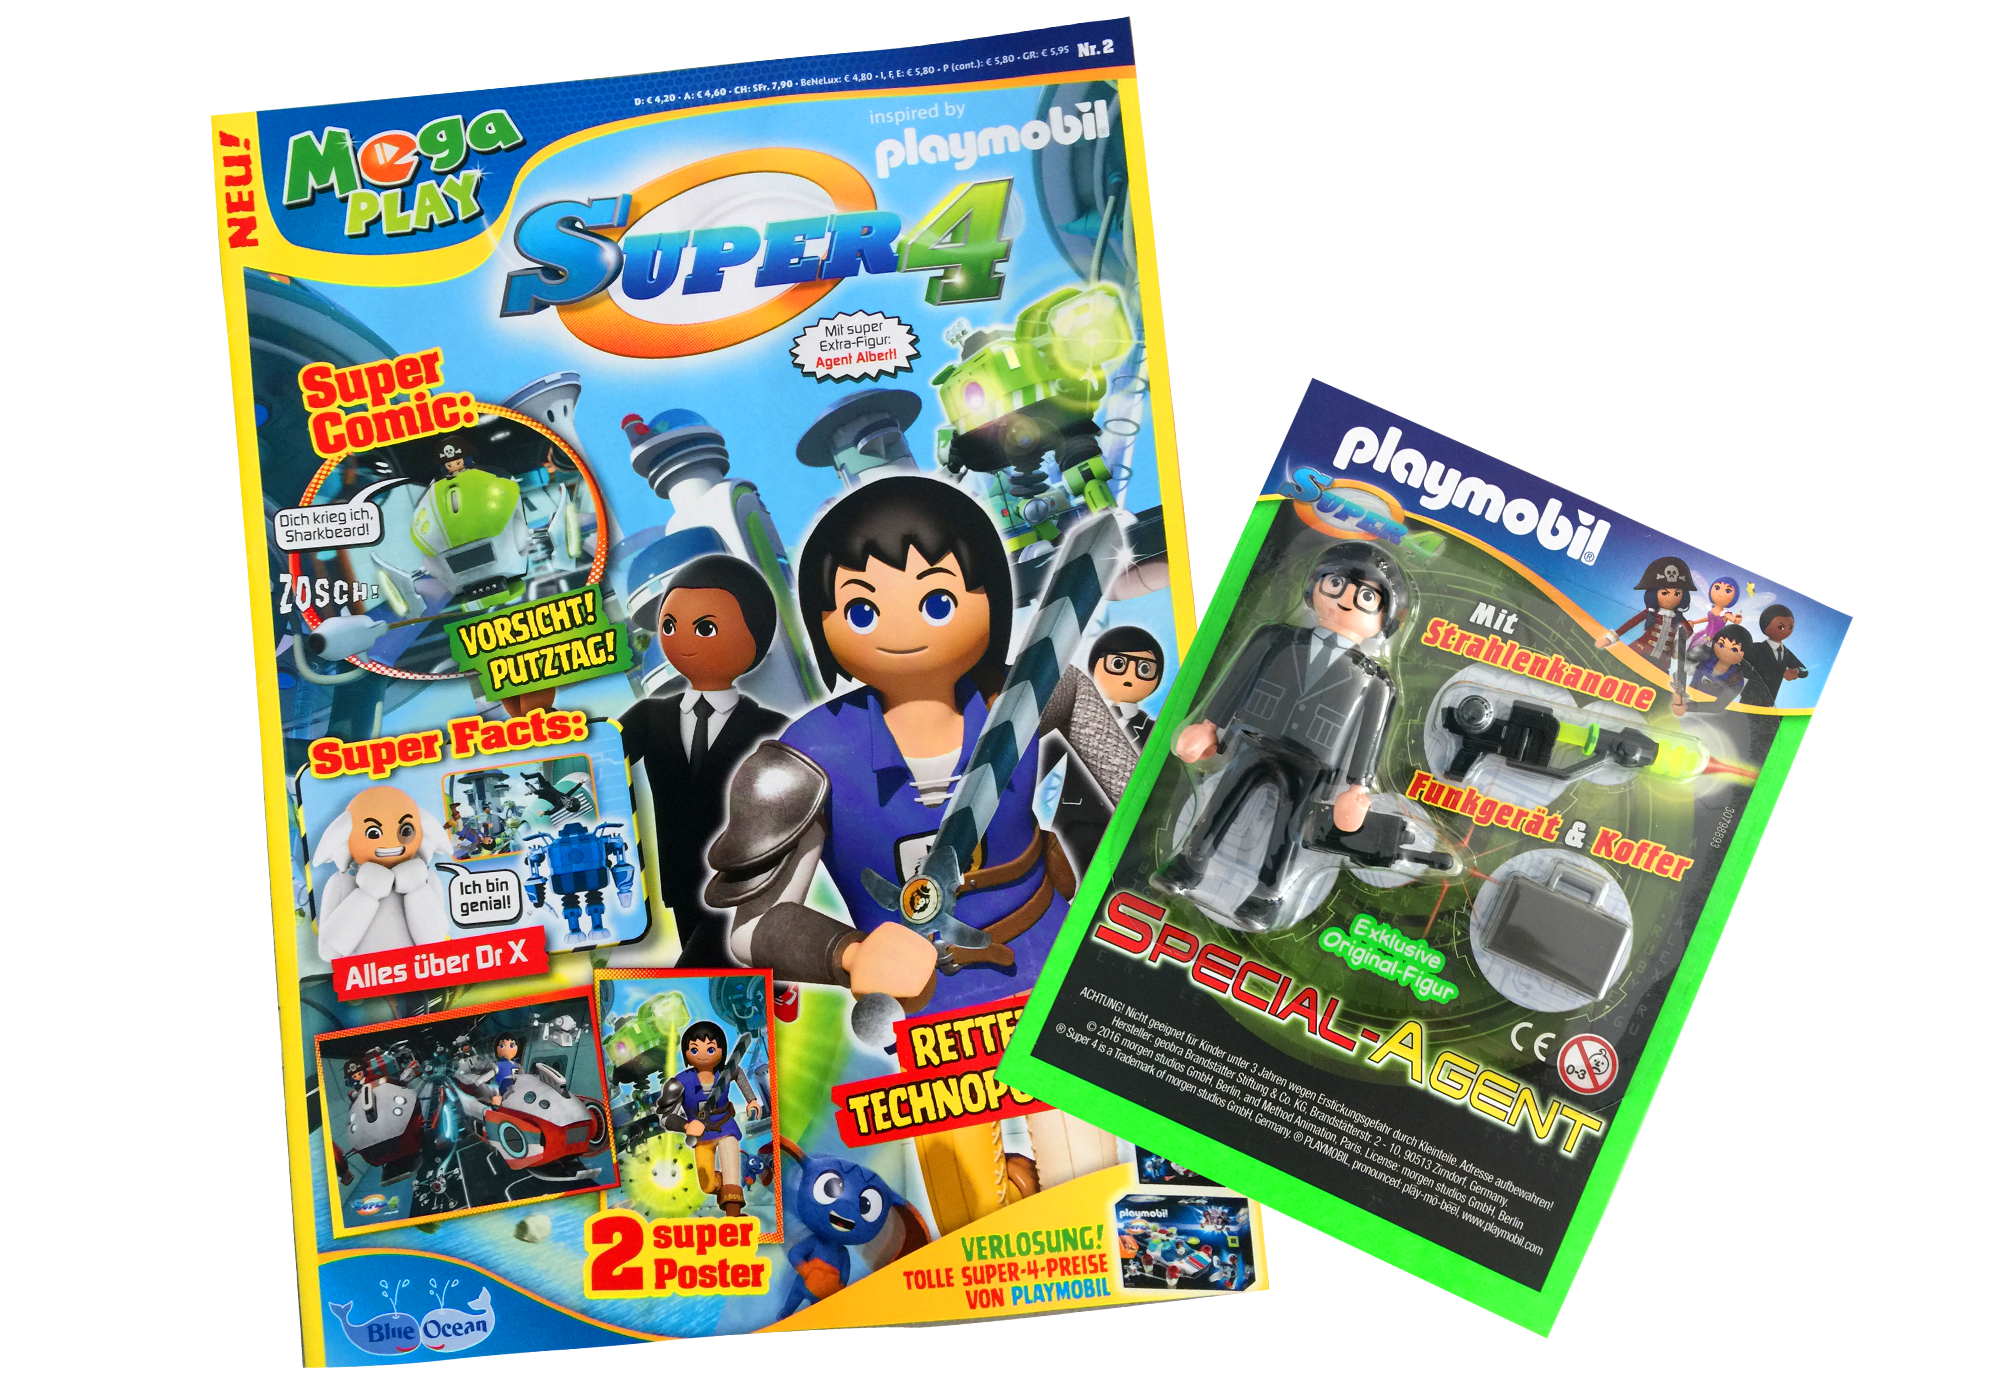 http://media.playmobil.com/i/playmobil/80808_product_detail/Super 4-Magazin 02/2017 (Heft 9)